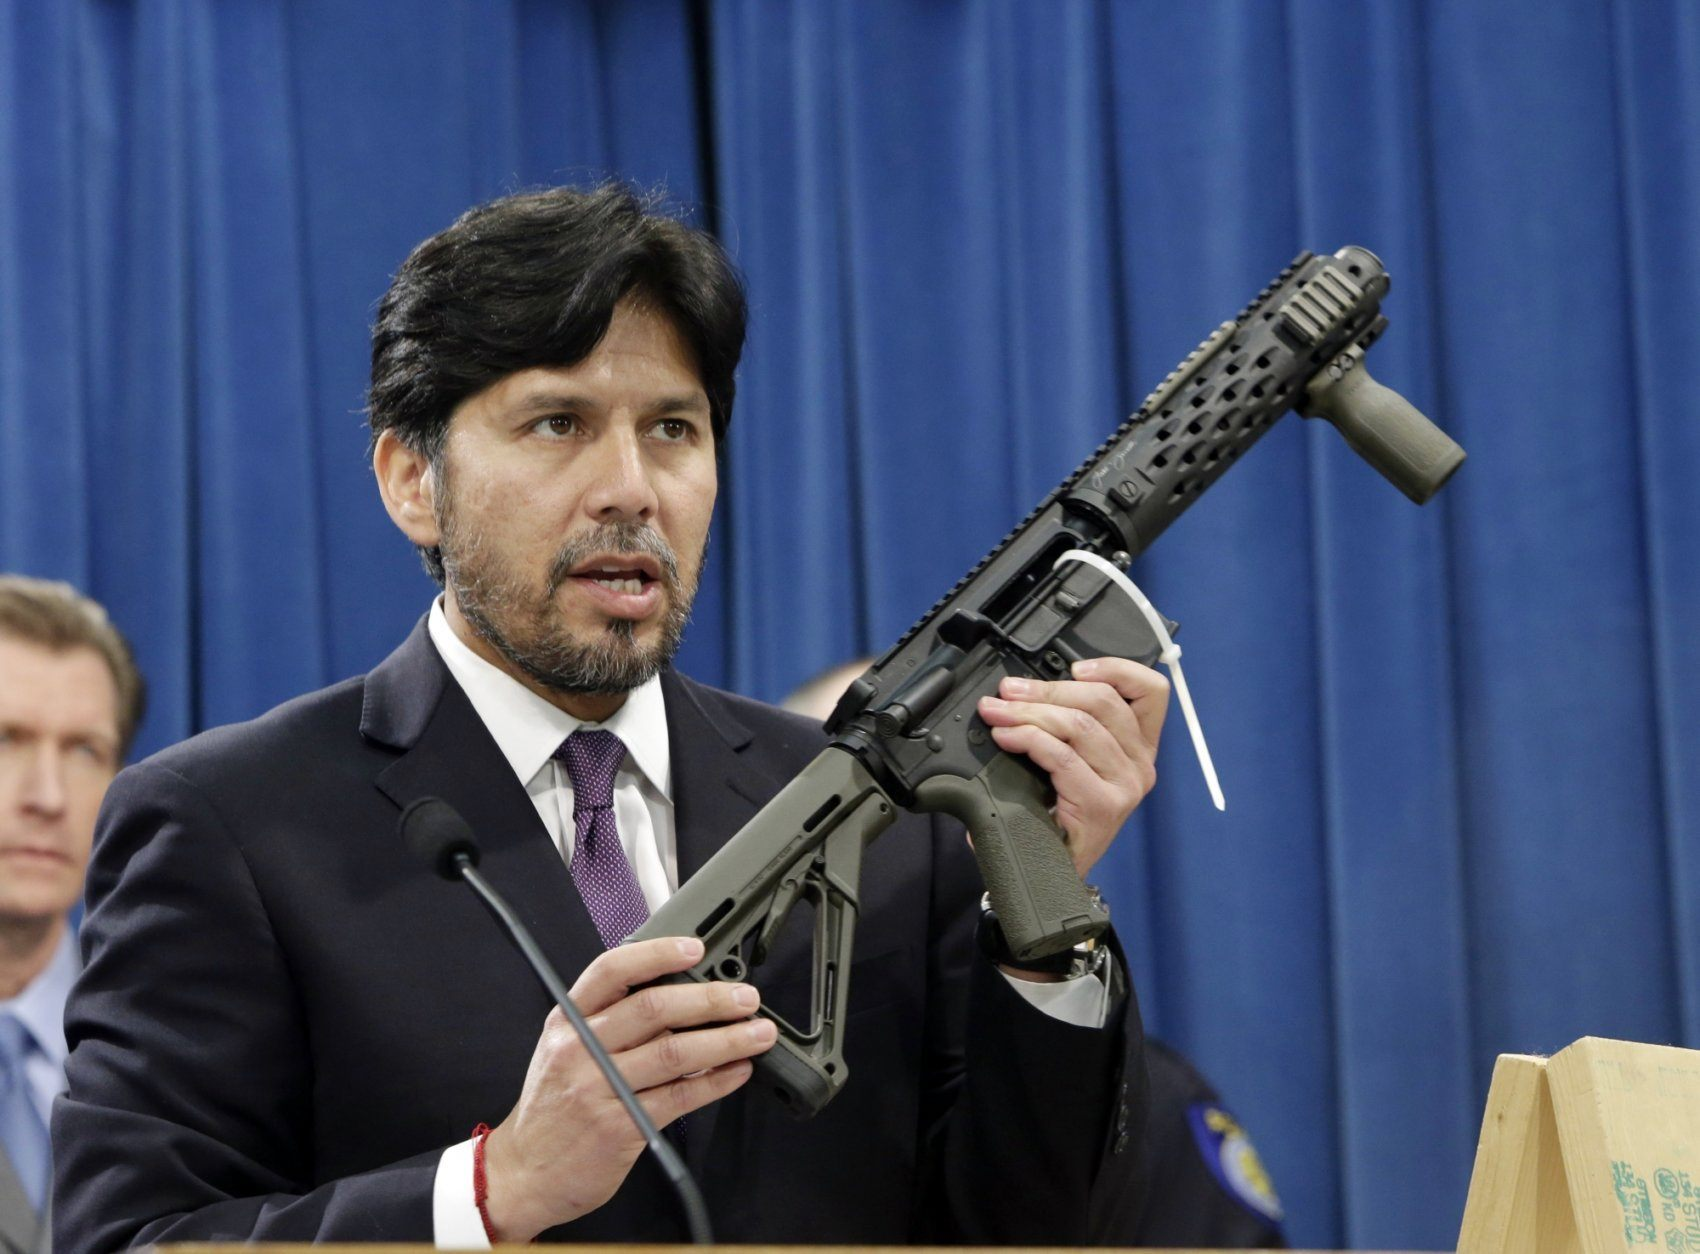 FILE - In this Jan. 13, 2014 file photo, former California State Sen. Kevin de Leon, D-Los Angeles, displays a homemade fully automatic rifle, confiscated by the Department of Justice, at the Capitol in Sacramento, Calif. California is among a handful of states taking tough actions to limit the availability of guns including military-style assault weapons, restrict the capacity of ammunition magazines and require background checks for purchasing bullets. But those steps and future gun control laws passed by Democratic-leaning states could face an uphill battle as the federal court system becomes increasingly dominated by conservative Republican appointees.(AP Photo/Rich Pedroncelli, File)